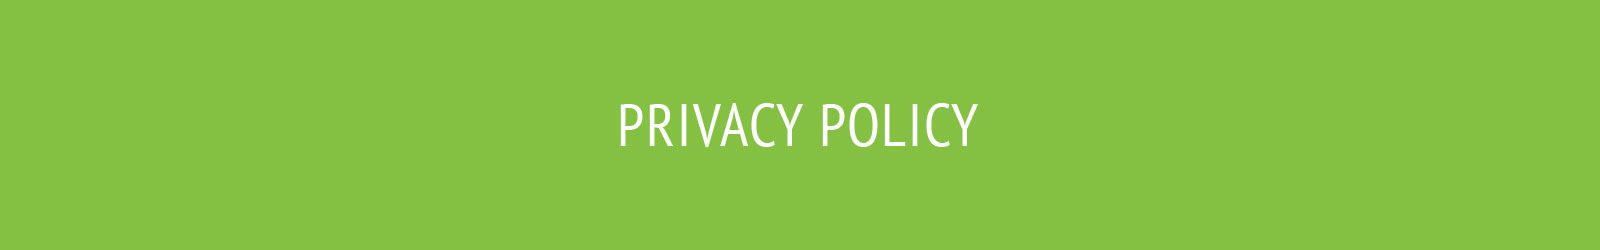 header-privacy-v1